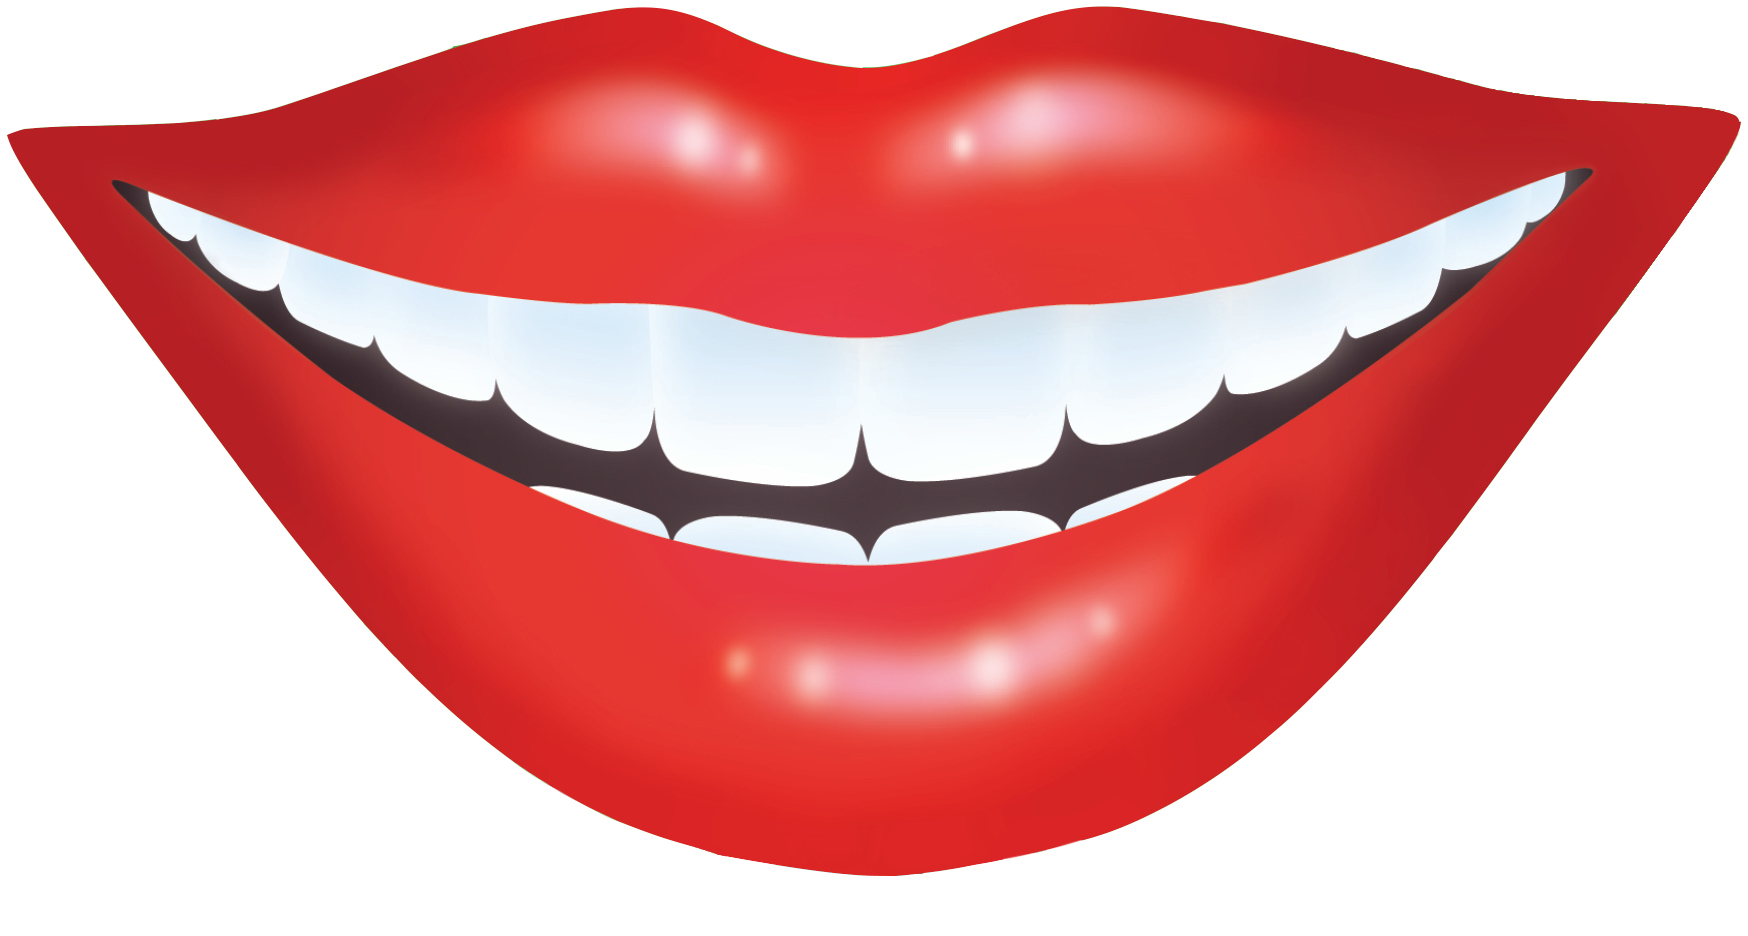 Smiling Mouth Clipart.